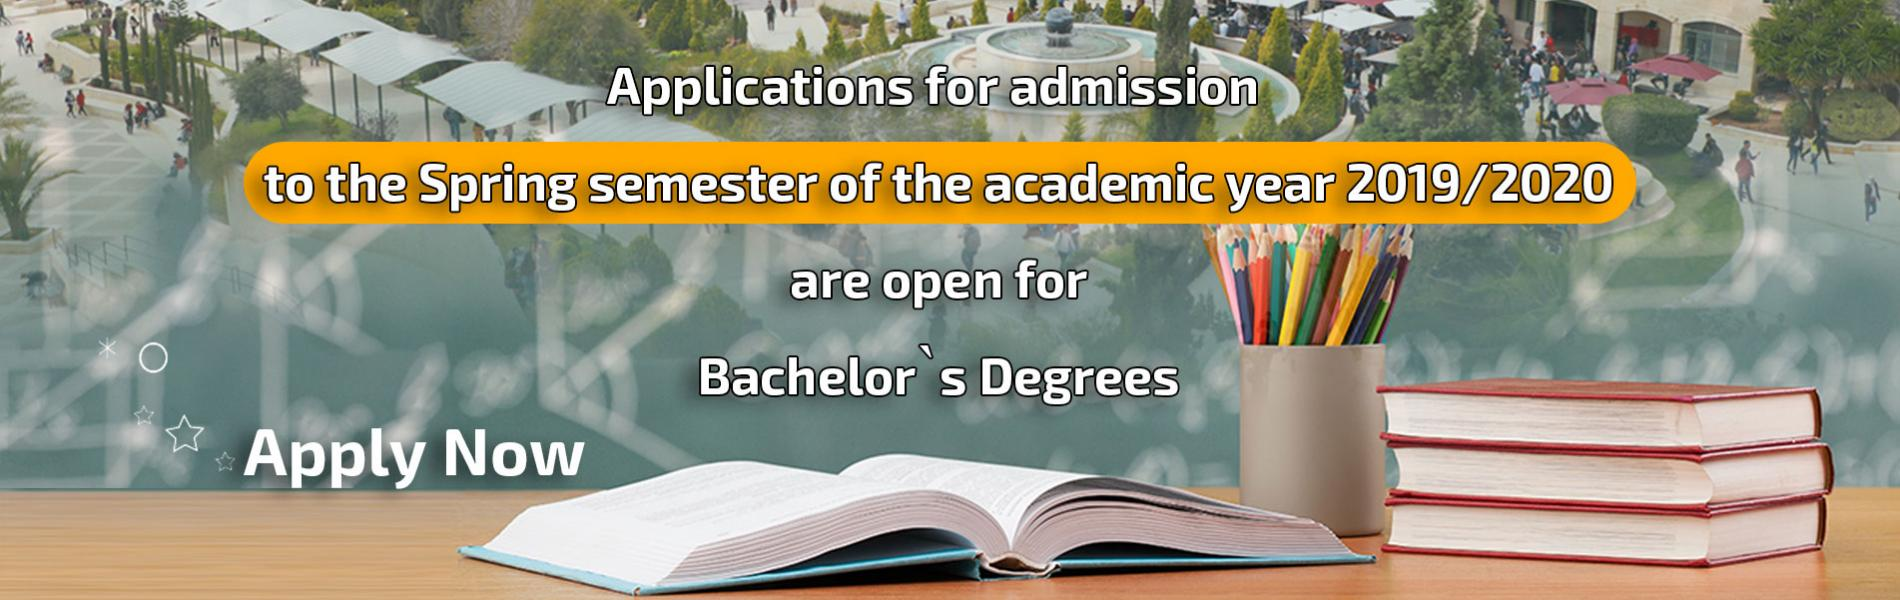 Announcement - Start Accepting Applications for Admission for Bachelor's Degree and Diploma in Education for Upper Basic Level for Spring Semester of Academic Year 2019/2020